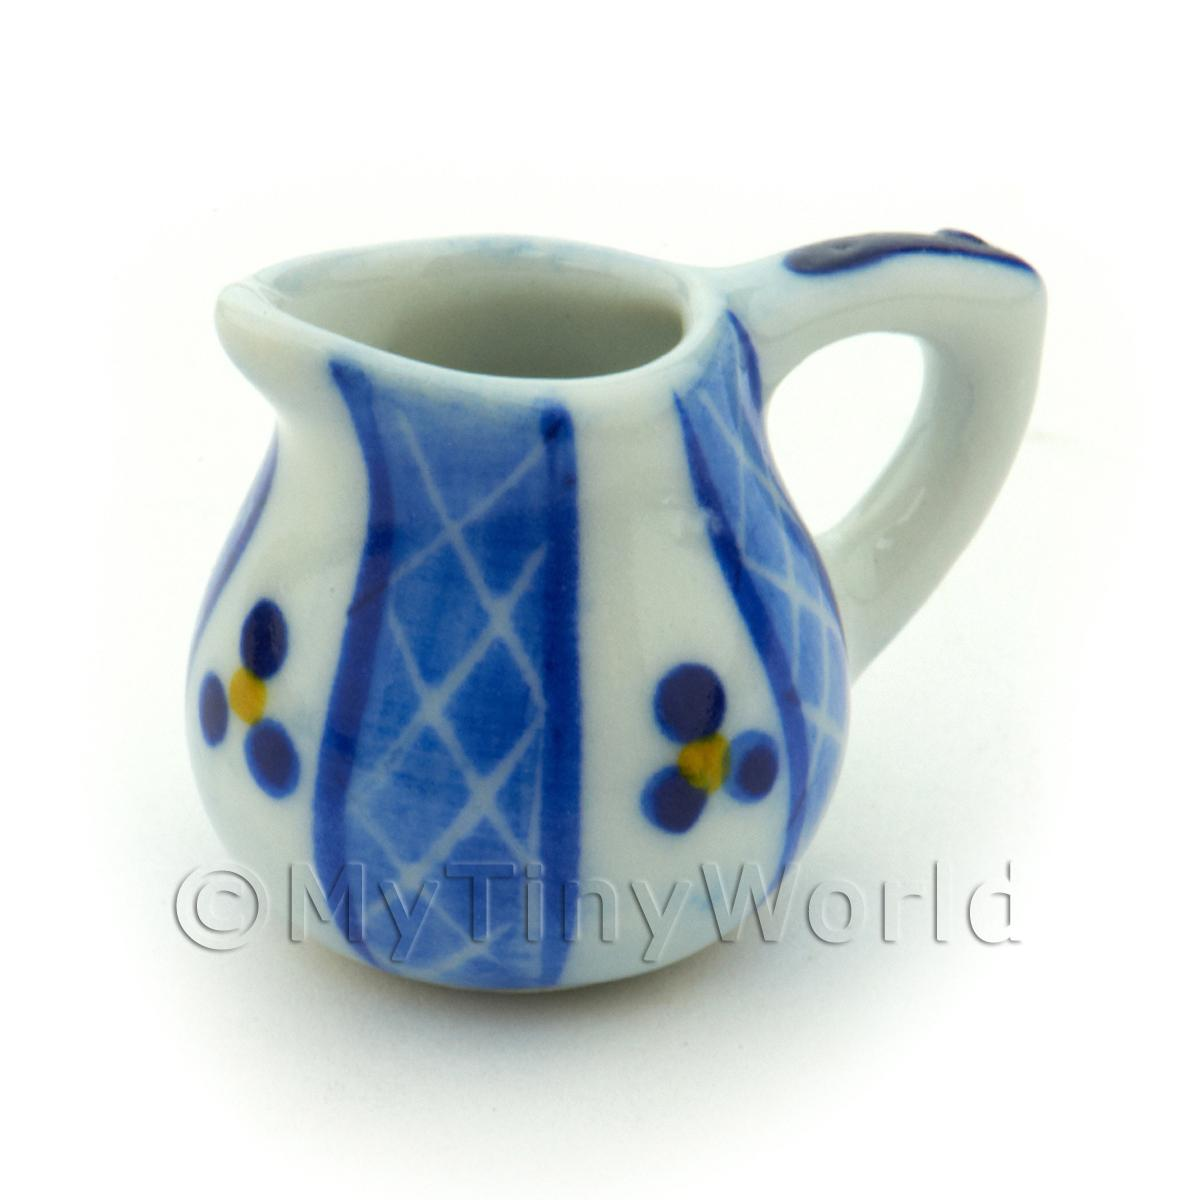 Dolls House Miniature Blue Lace Design Ceramic Round Water Jug